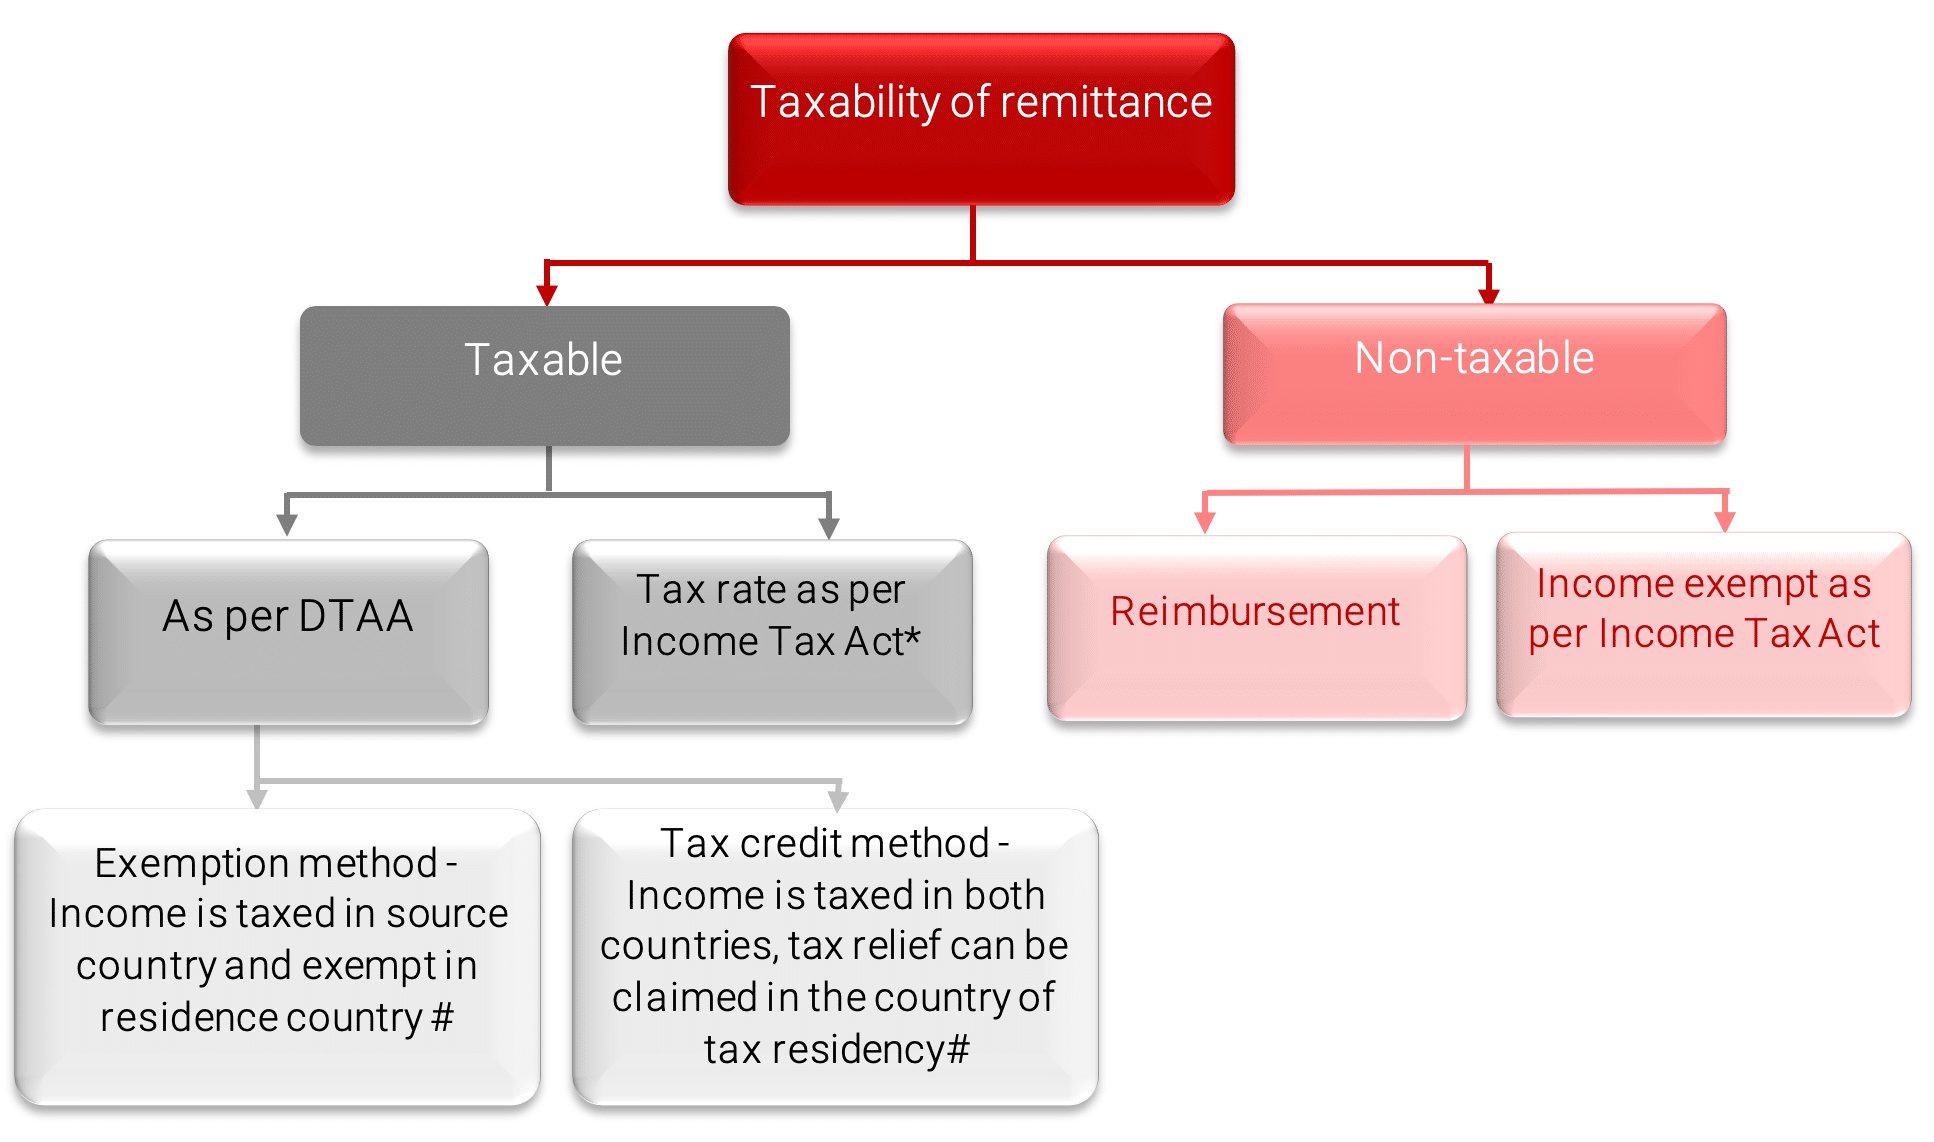 taxibility of remittance